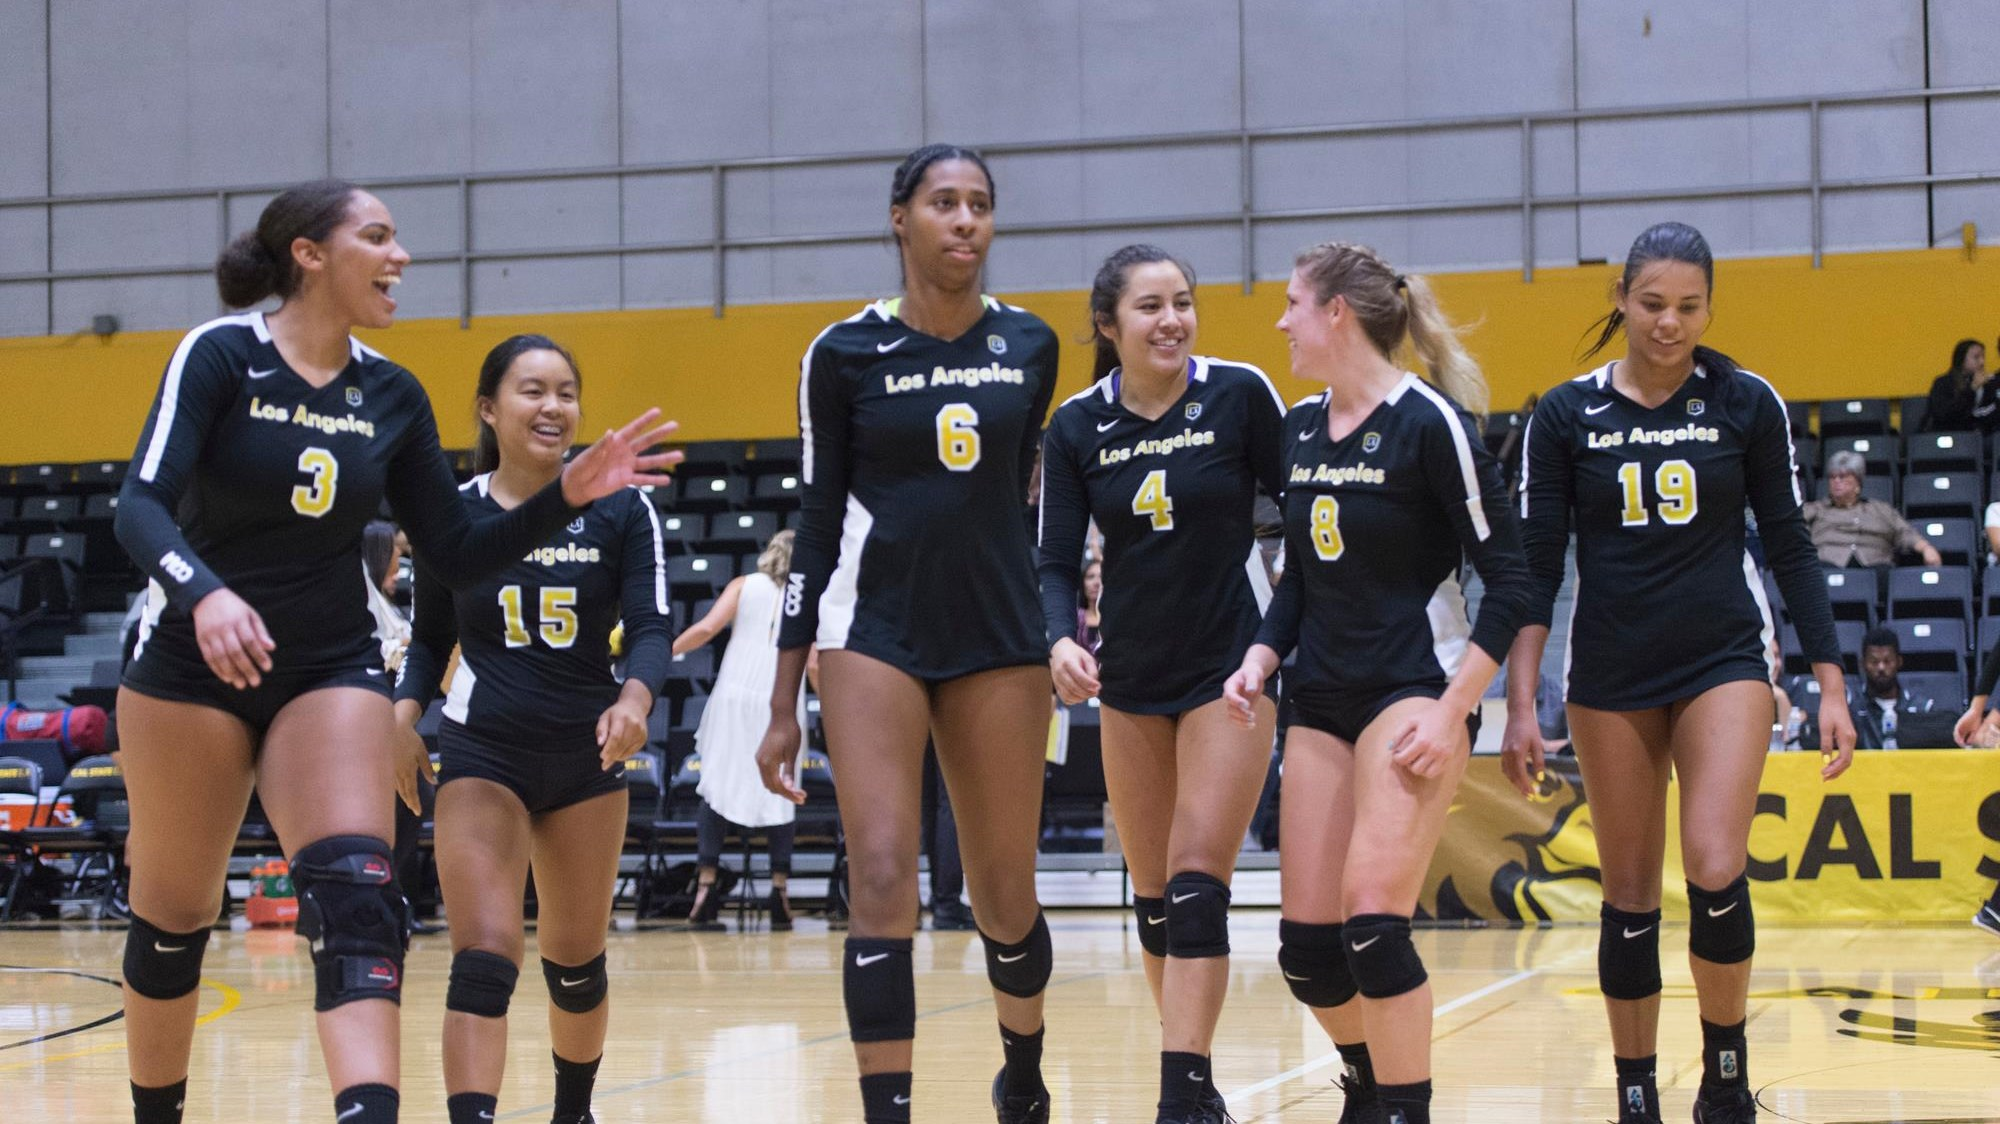 No 16 Golden Eagles To Host No 2 Coyotes On Friday Cal State La Athletics